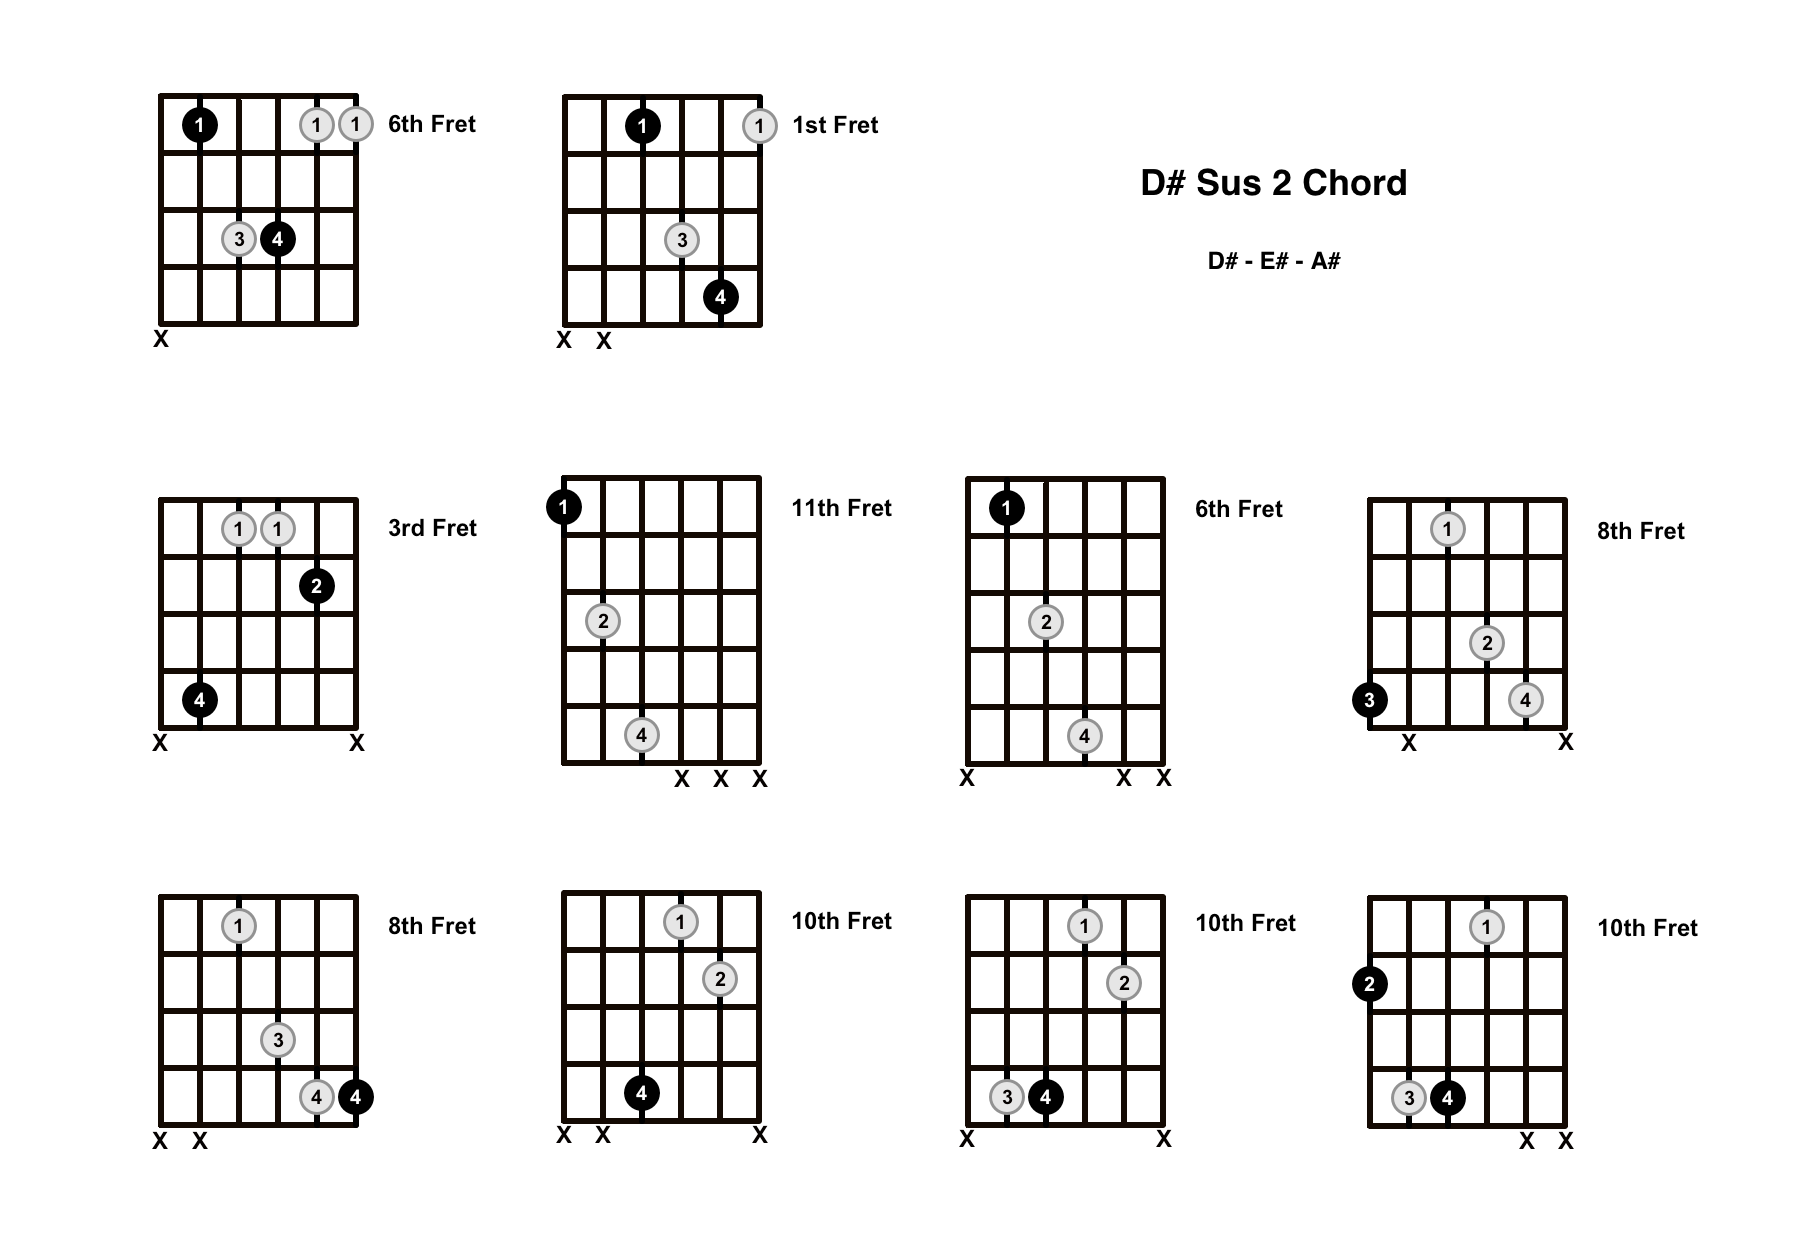 D# Sus 2 Chord On The Guitar (D Sharp Suspended 2) – Diagrams, Finger Positions and Theory